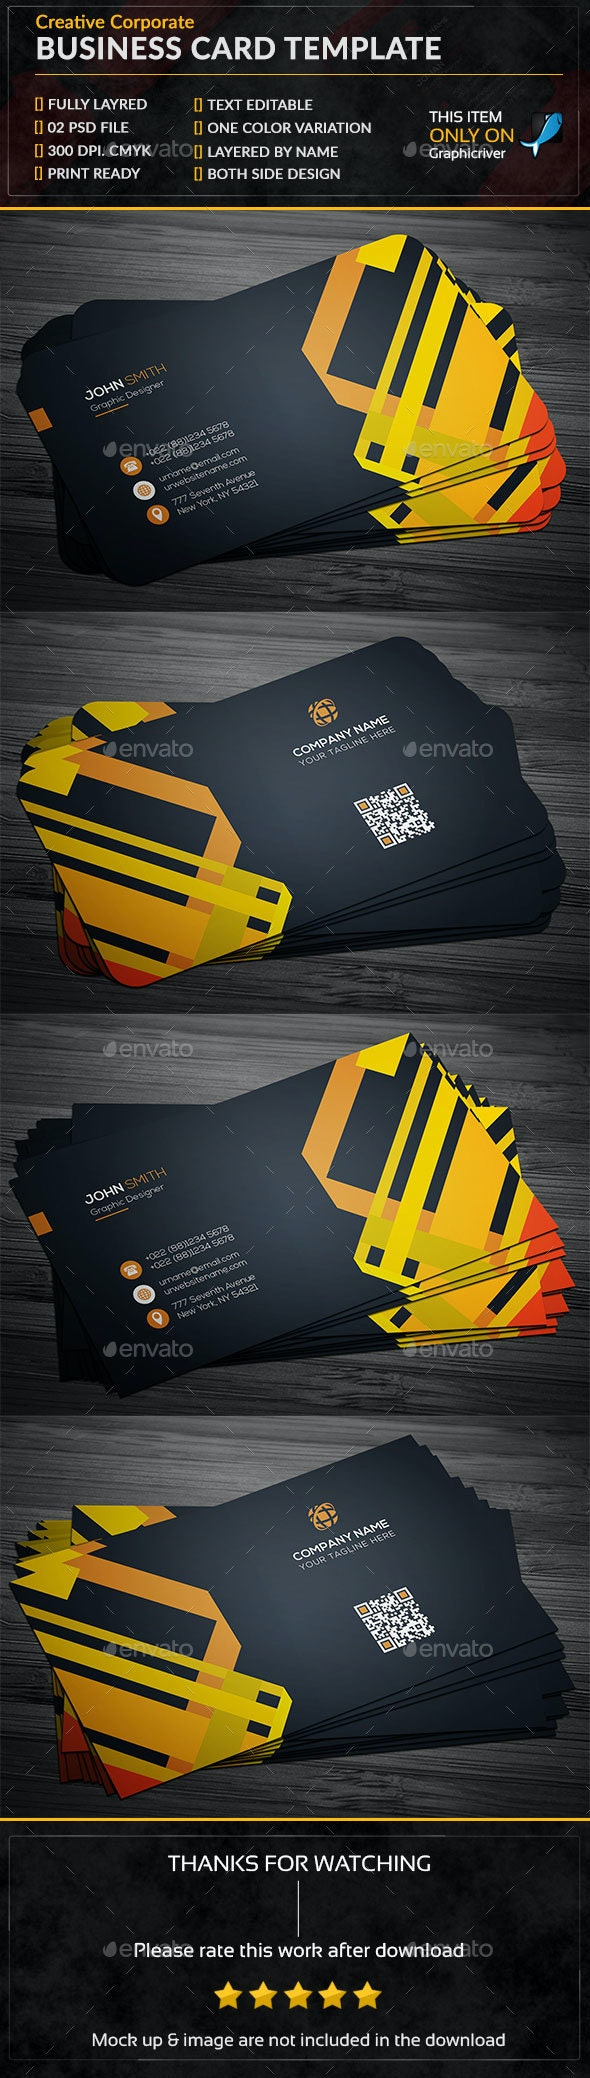 Creative Corporate Business Card Template - Business Cards Print Templates